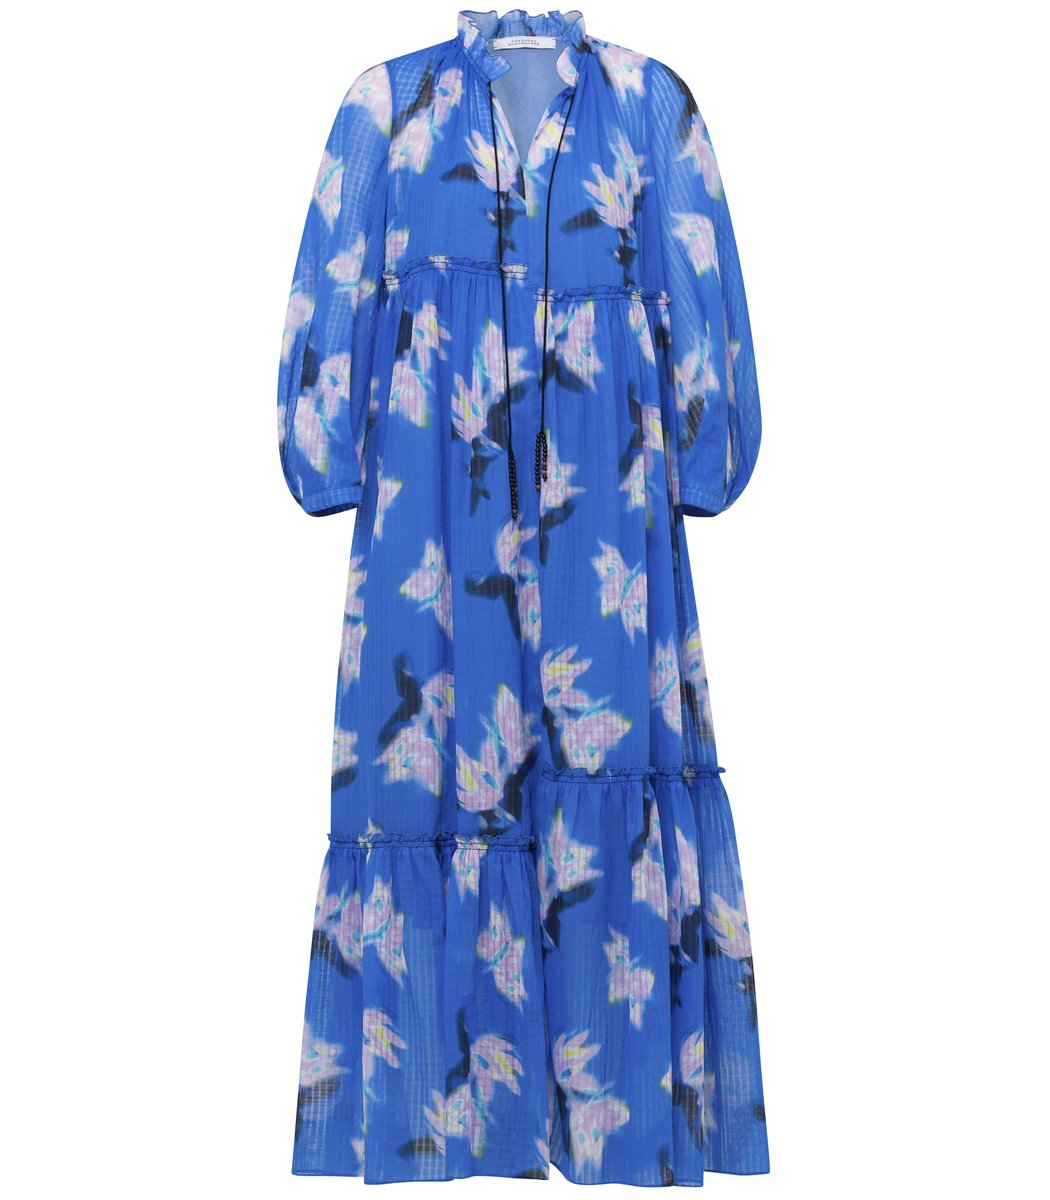 Dorothee Schumacher Energetic Mix Dress in Blue Blurry Flora